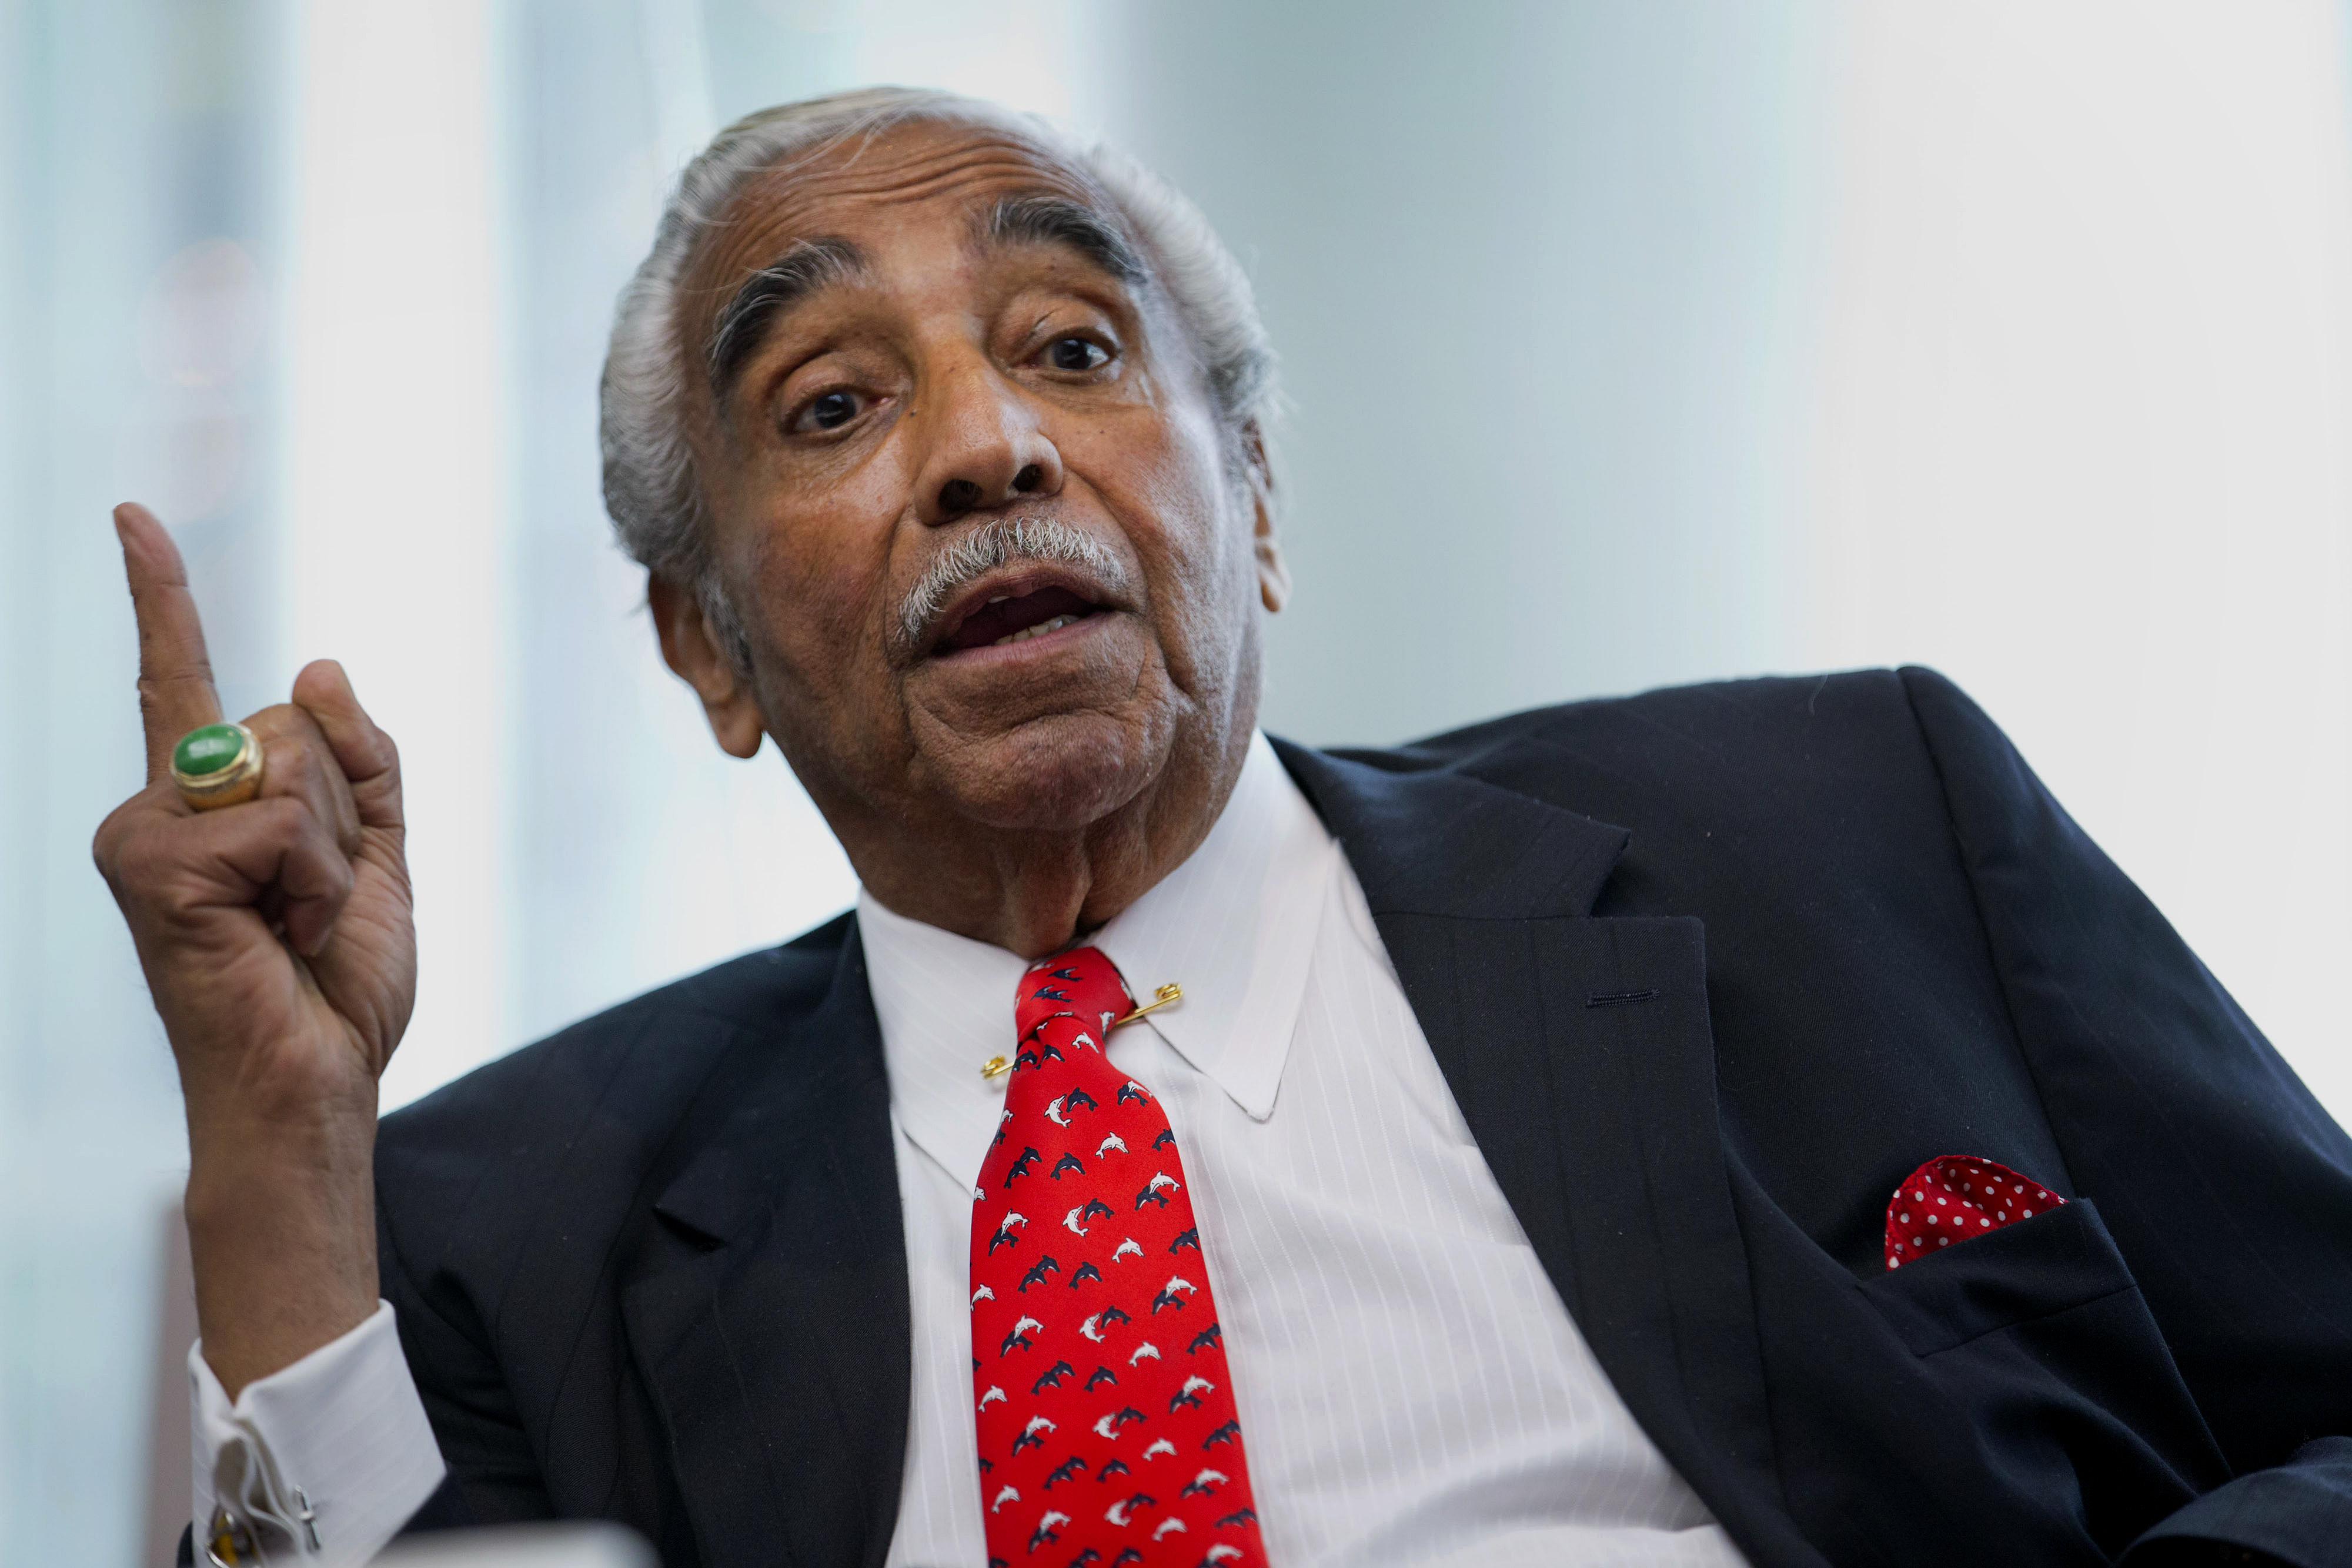 Representative Charles Rangel, a Democrat from New York, speaks during an interview in New York, U.S., on Friday, June 6, 2014.